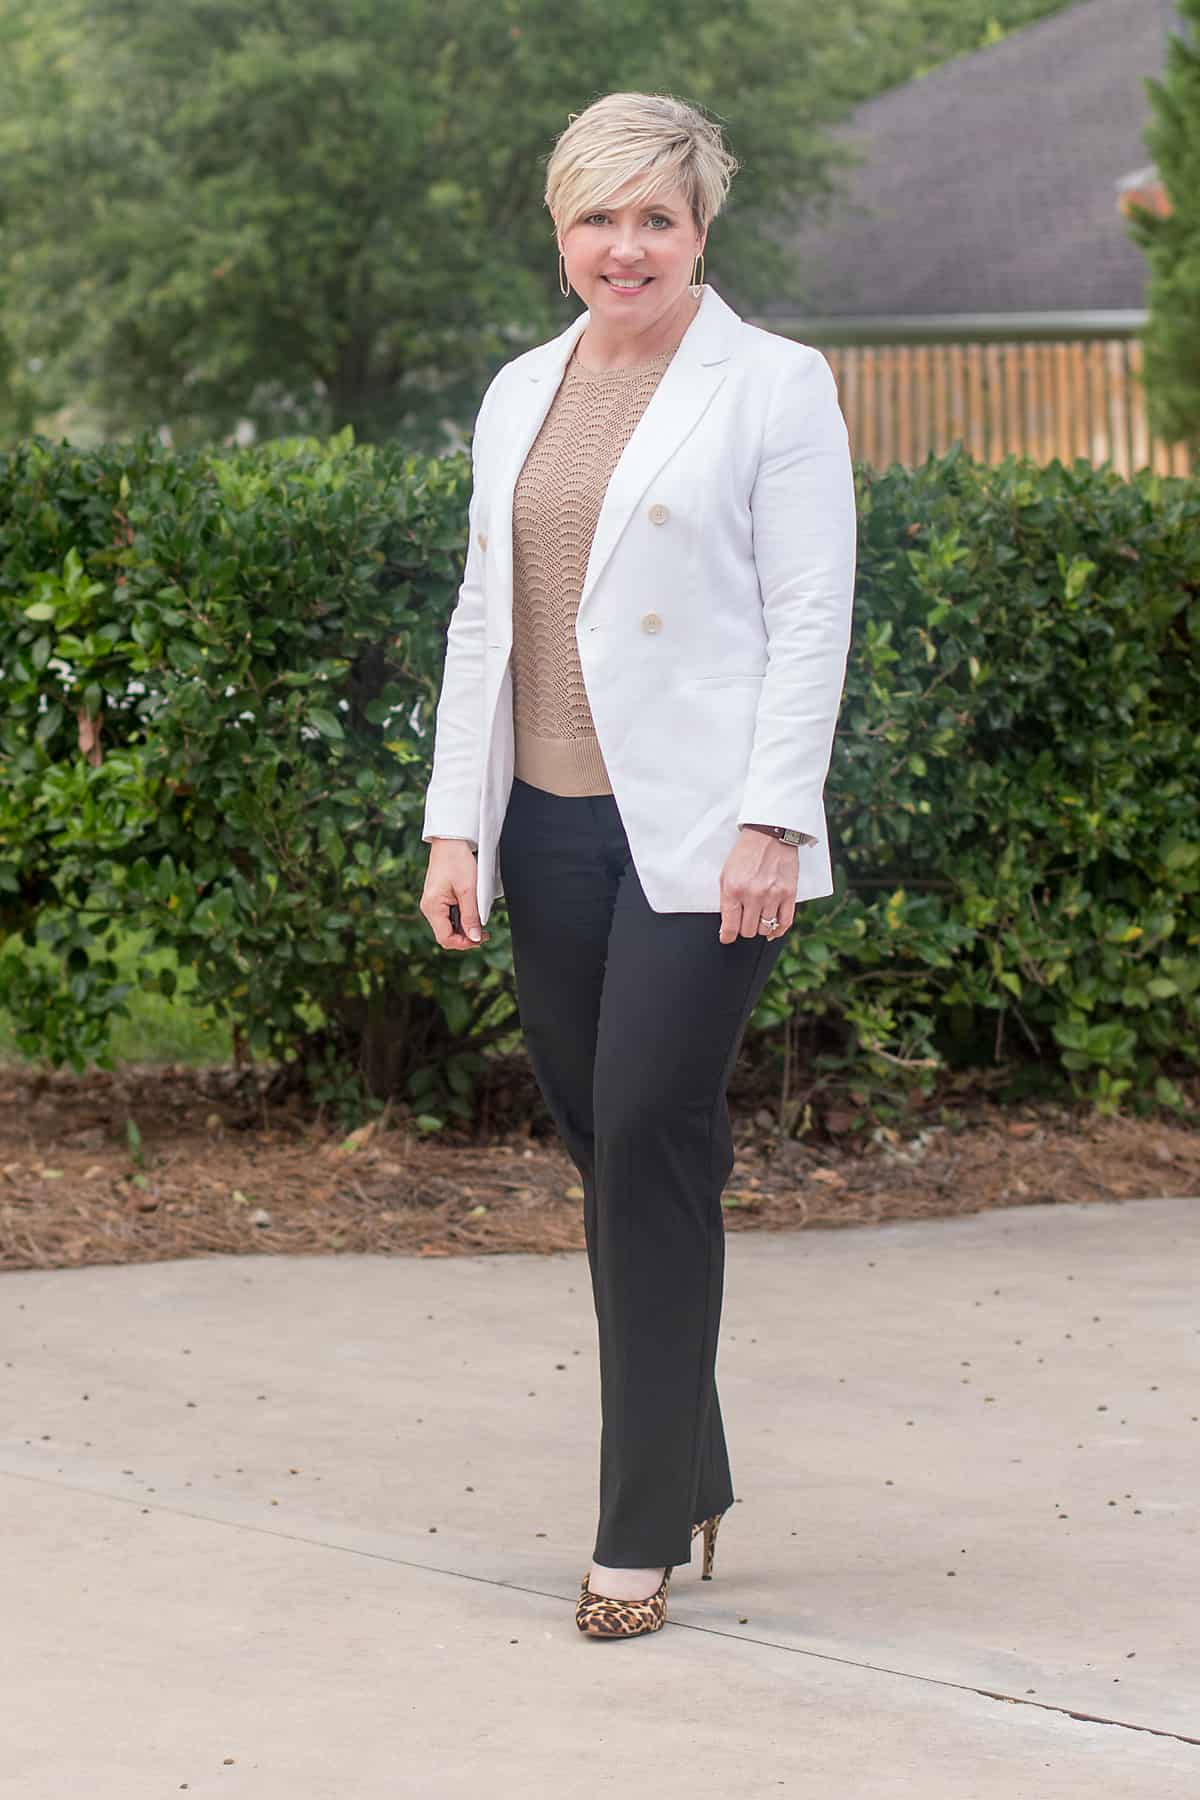 womens business casual outfit with white blazer